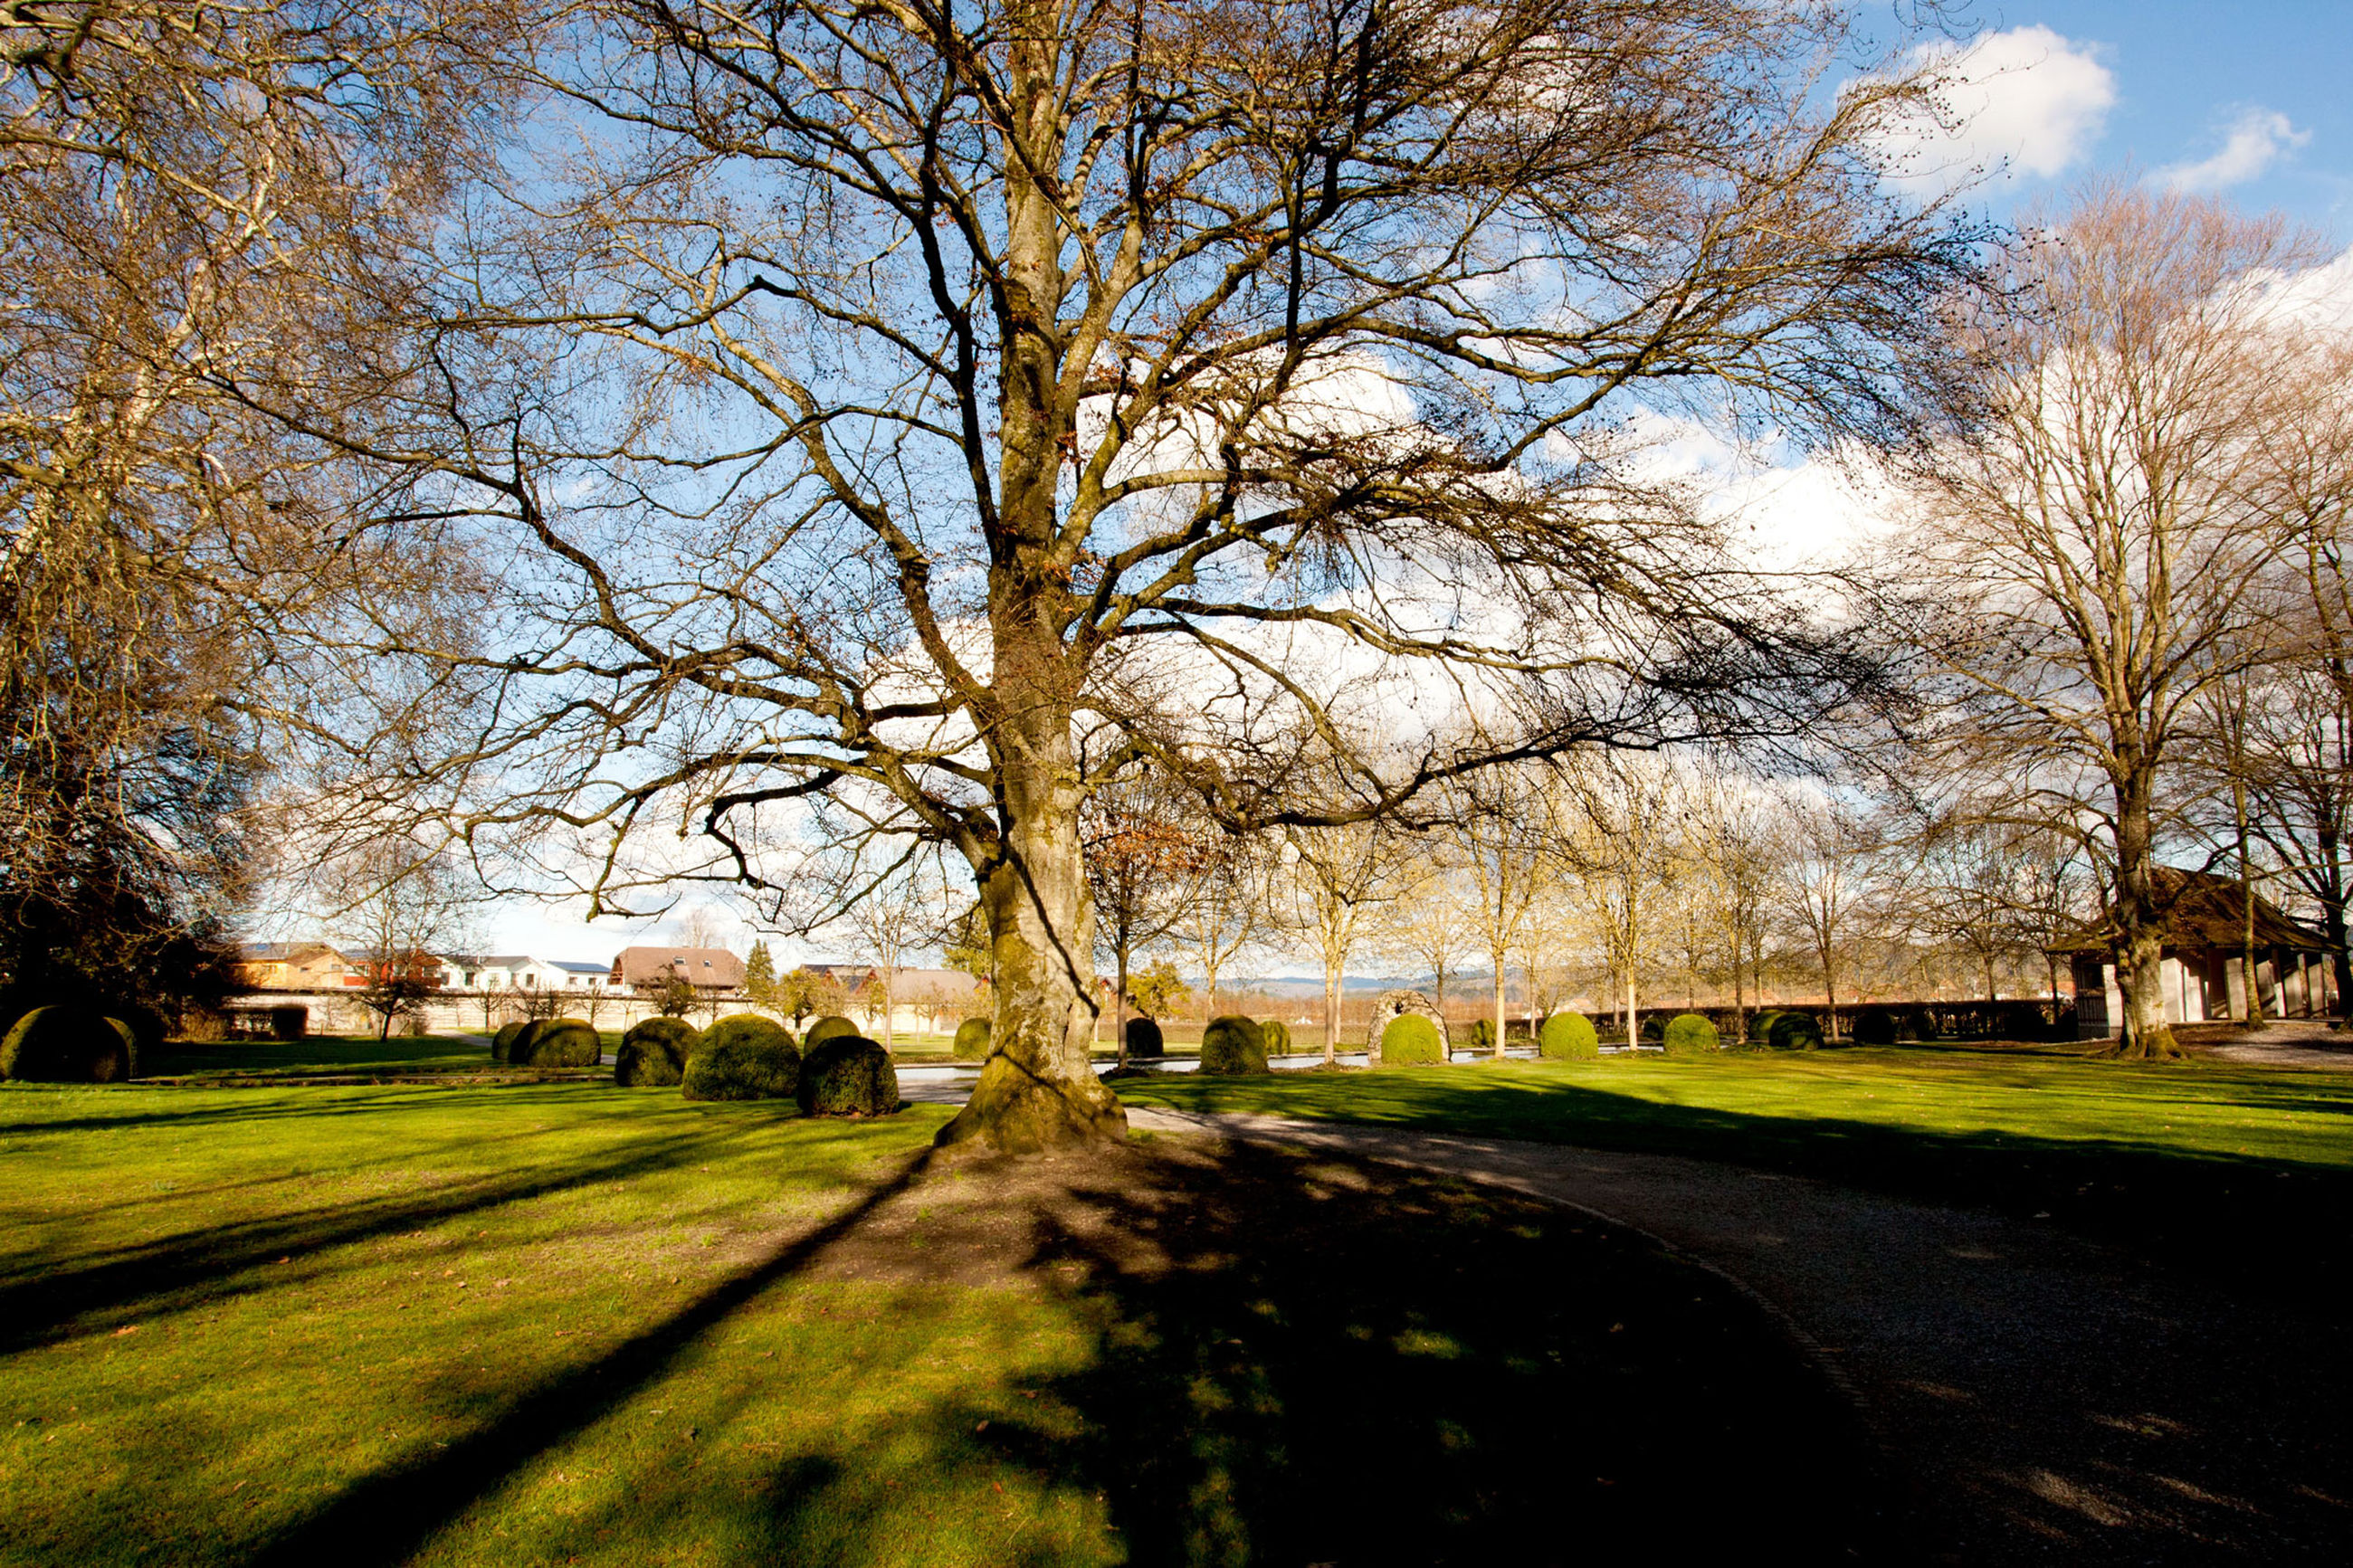 tree, plant, nature, grass, sky, sunlight, bare tree, day, park, beauty in nature, shadow, outdoors, no people, park - man made space, tranquility, branch, scenics - nature, architecture, land, landscape